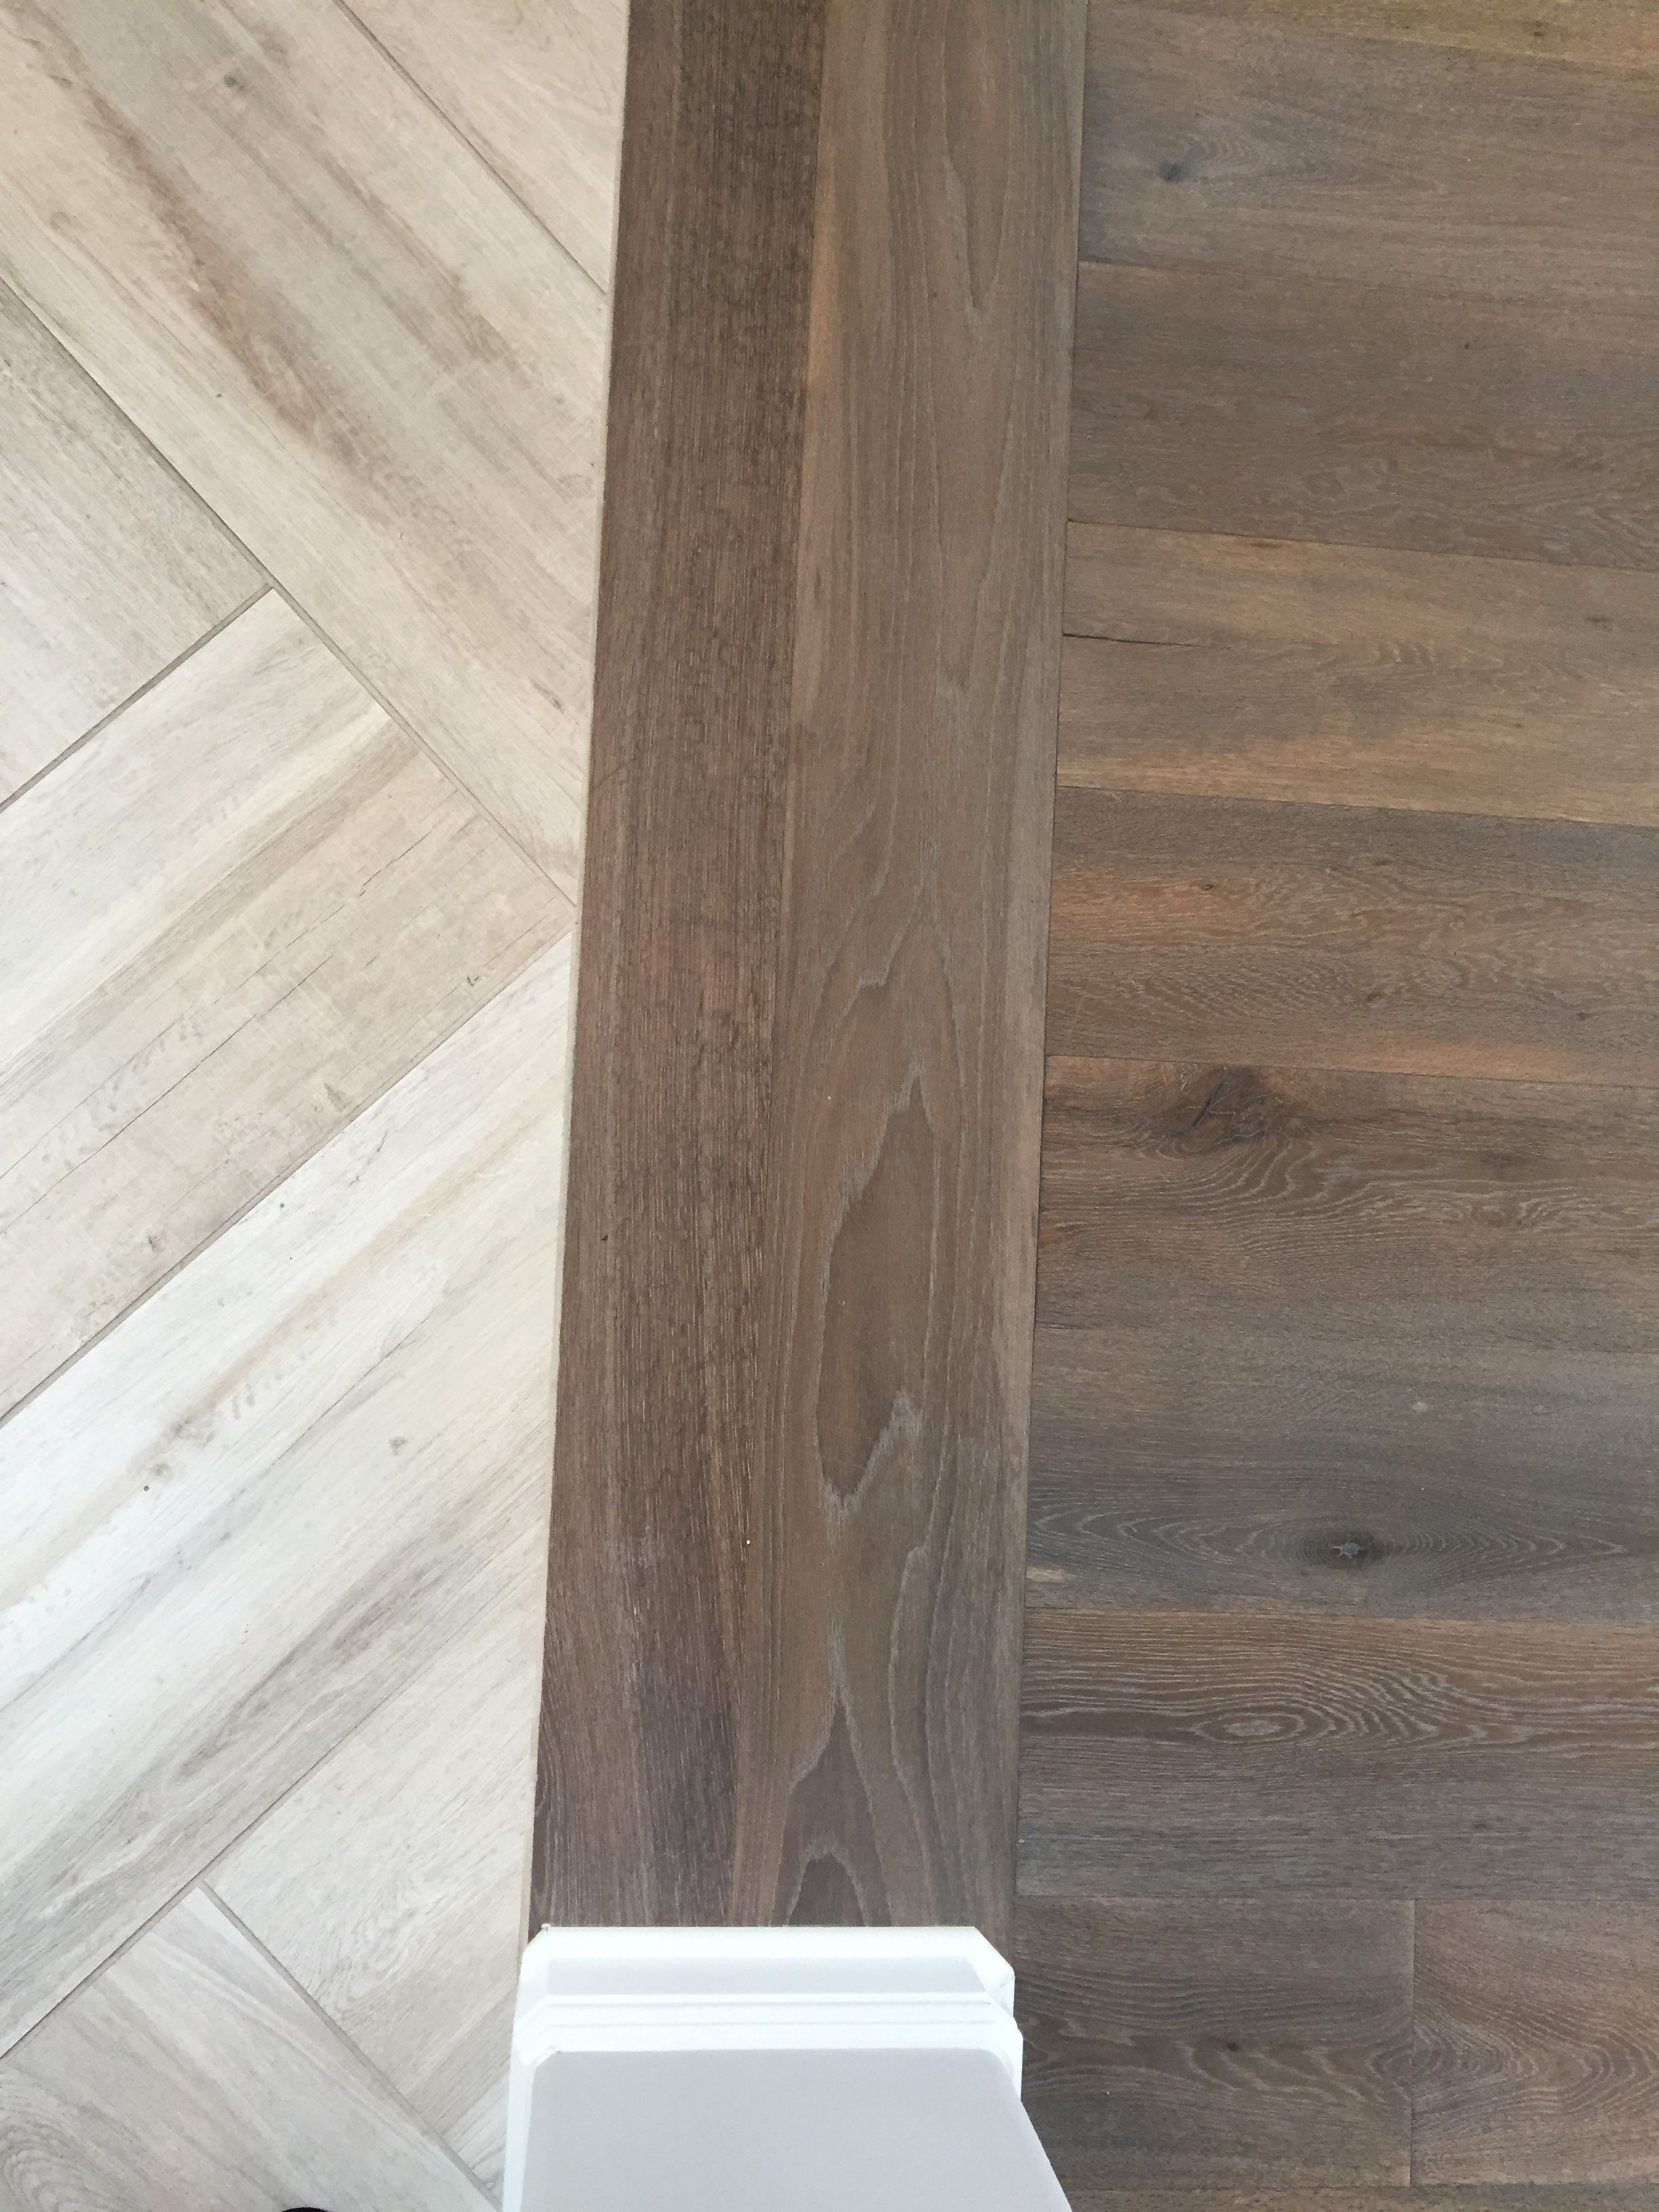 Types Of Hardwood Floors Pictures Of Floor Transition Laminate to Herringbone Tile Pattern Model In Floor Transition Laminate to Herringbone Tile Pattern Herringbone Tile Pattern Herringbone Wood Floor